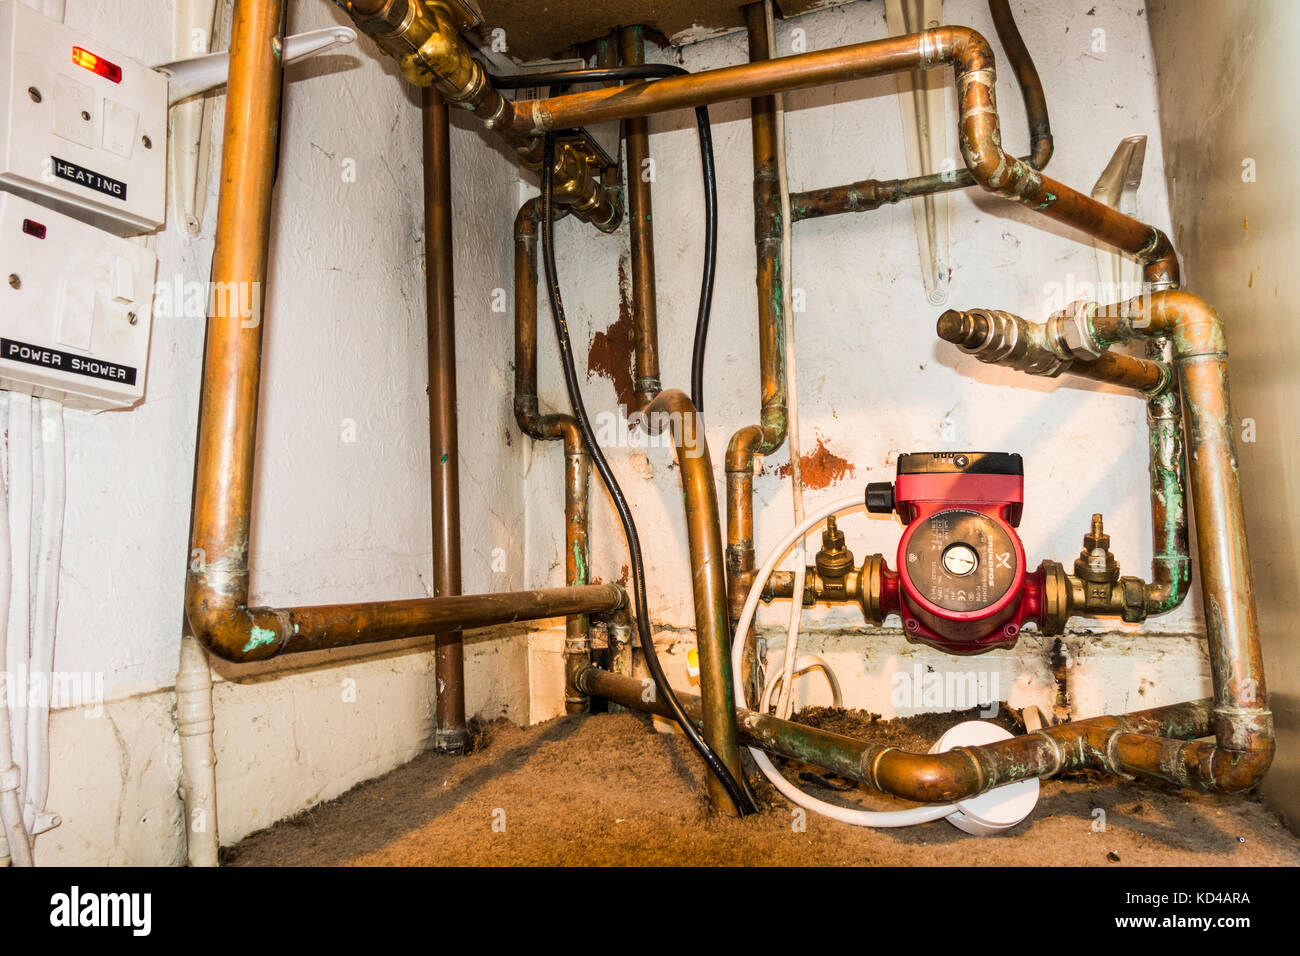 Interconnect Stock Photos Images Alamy Wiring Electric Shower Domestic Installation Of A Central Heating System With Wide View Pump And